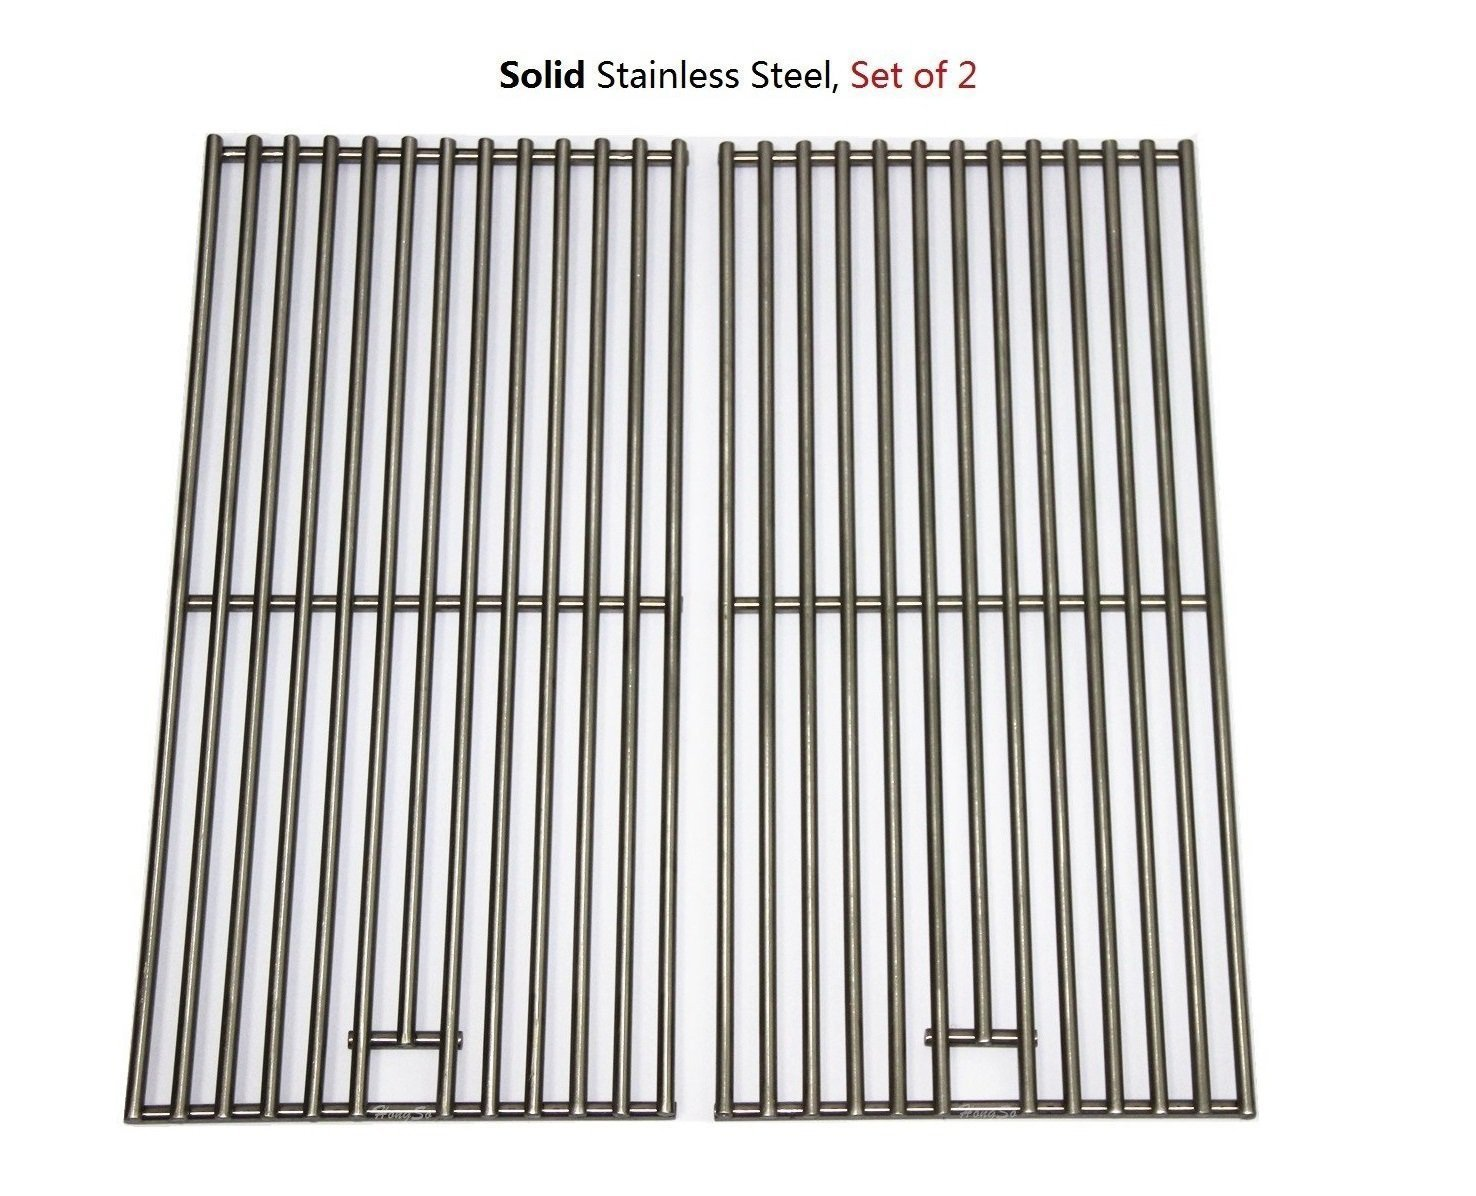 BBQration 2-pack BBQ Solid Stainless Steel Wire Cooking Grid, Cooking Grate Replacement for 2 burner Char-Broil 463645015, 466645015, 466645115 and Others.